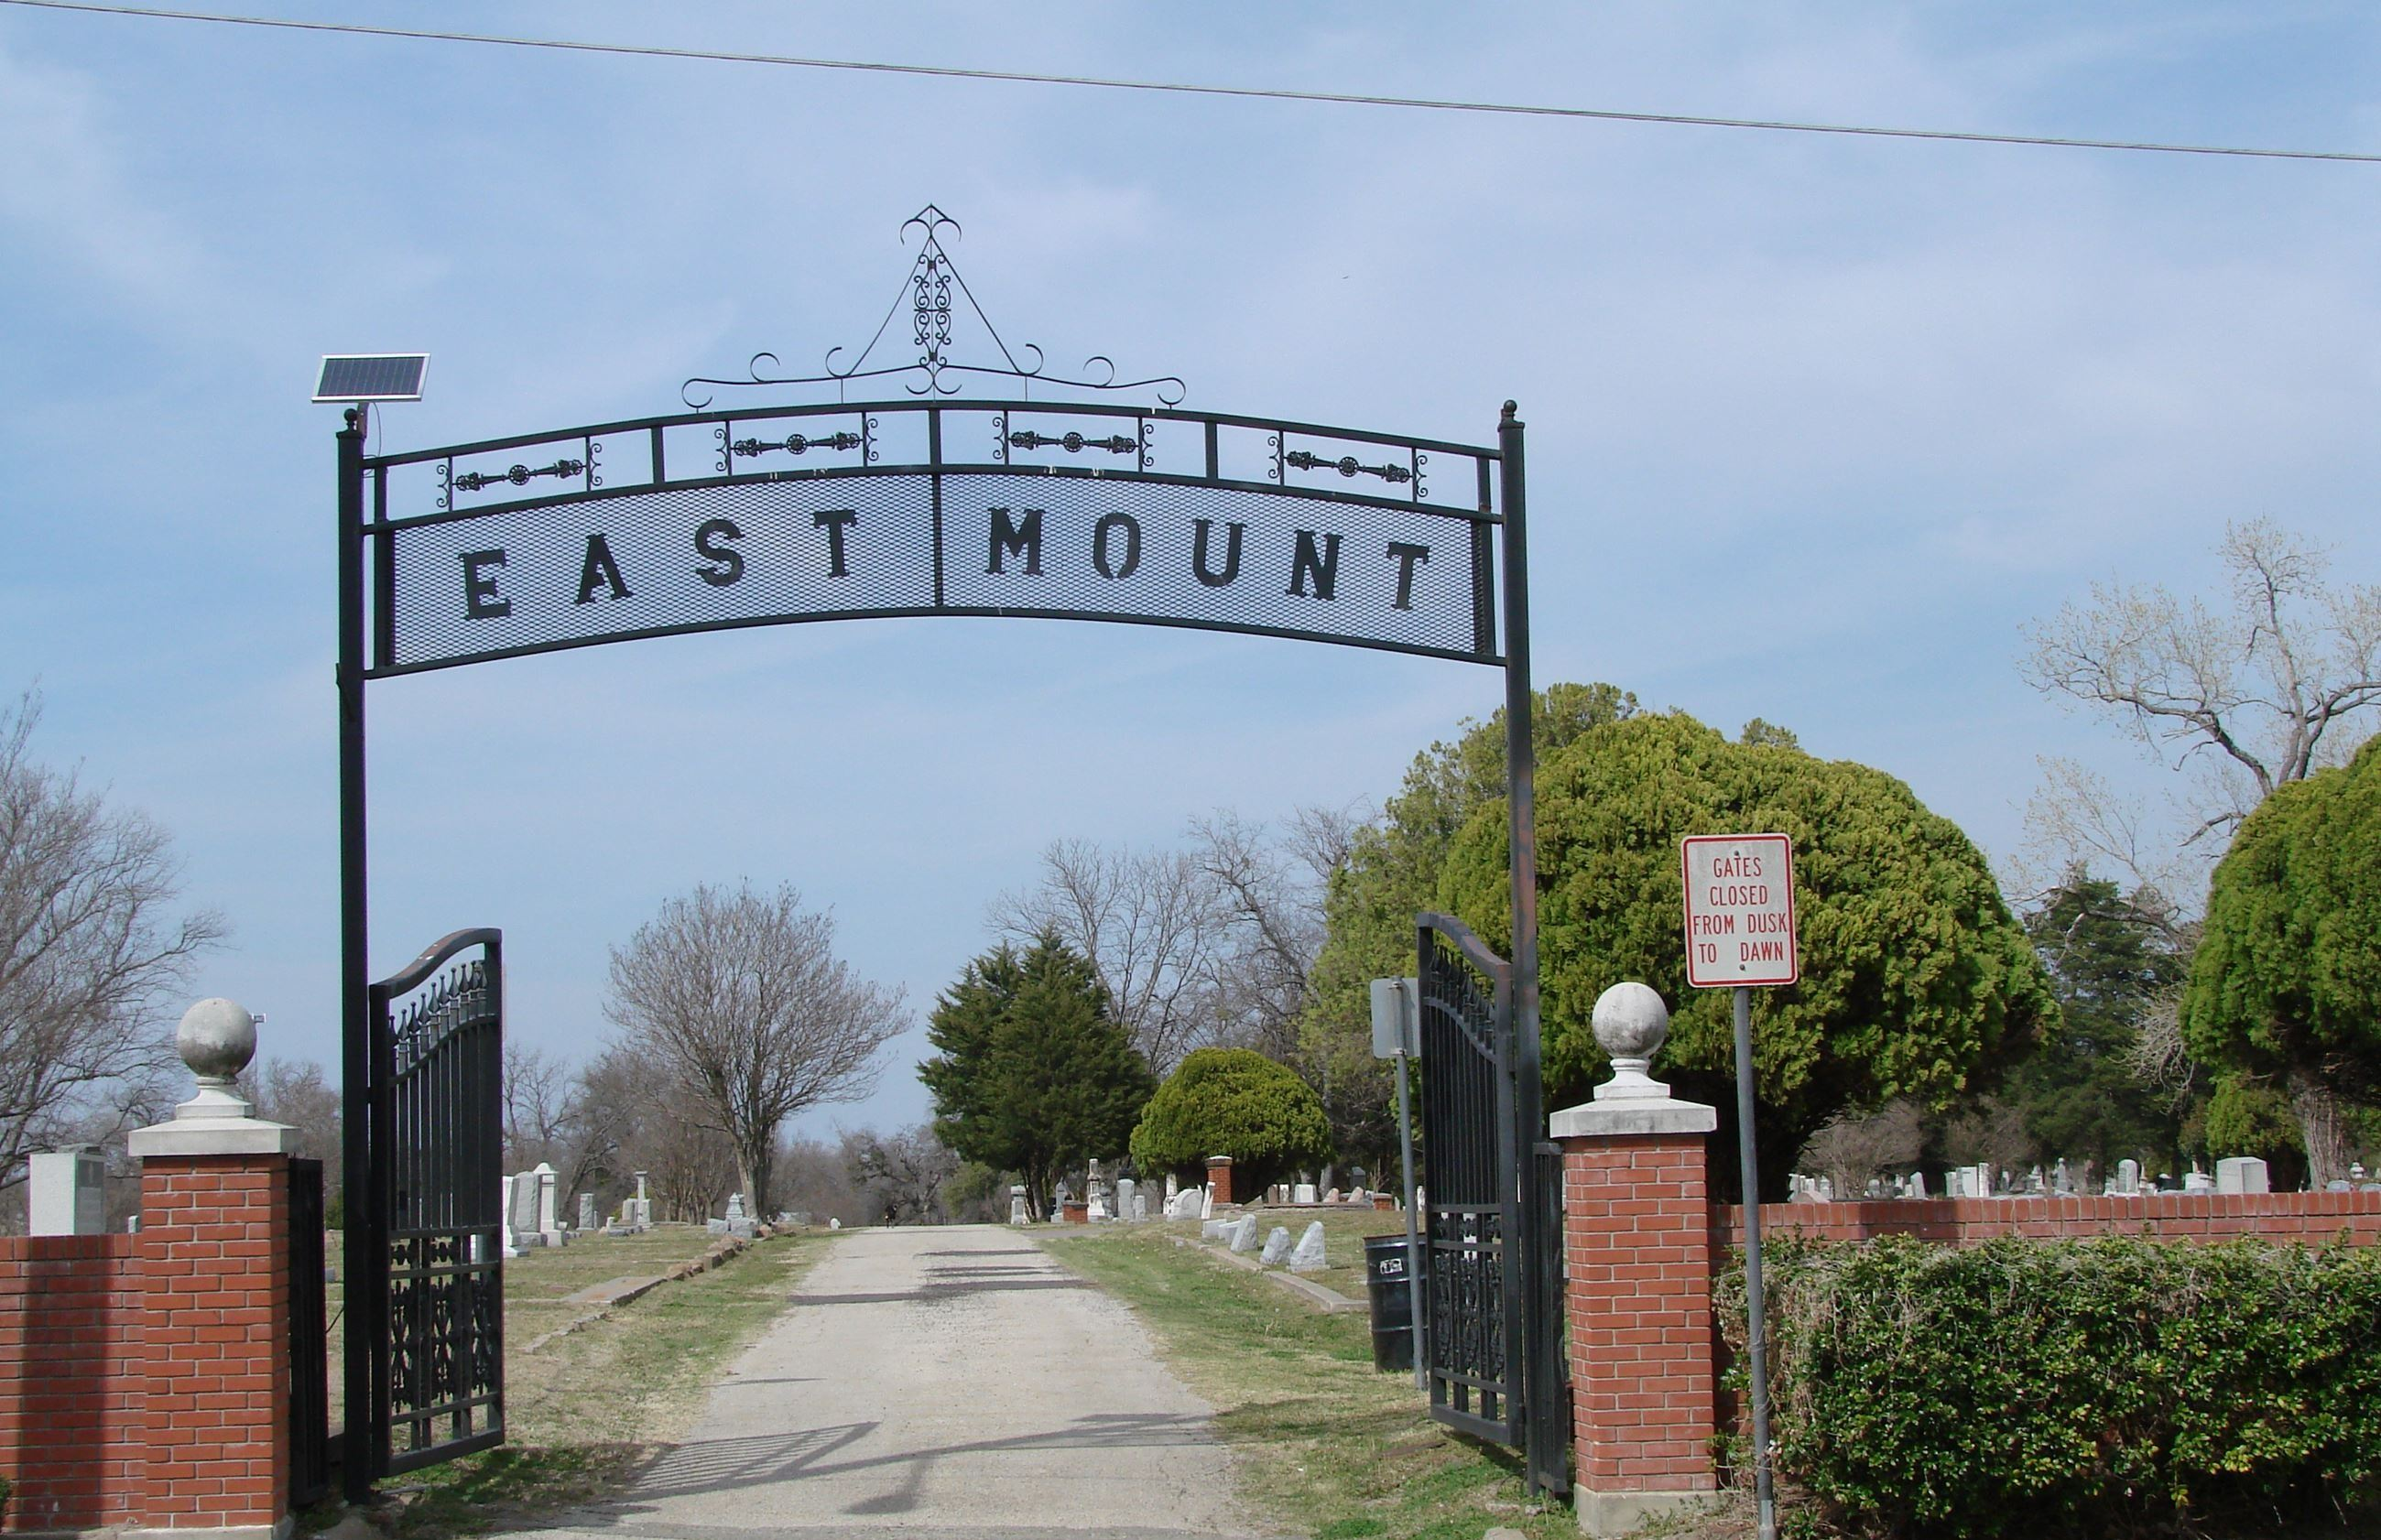 East Mount Cemetery gate with brick fence